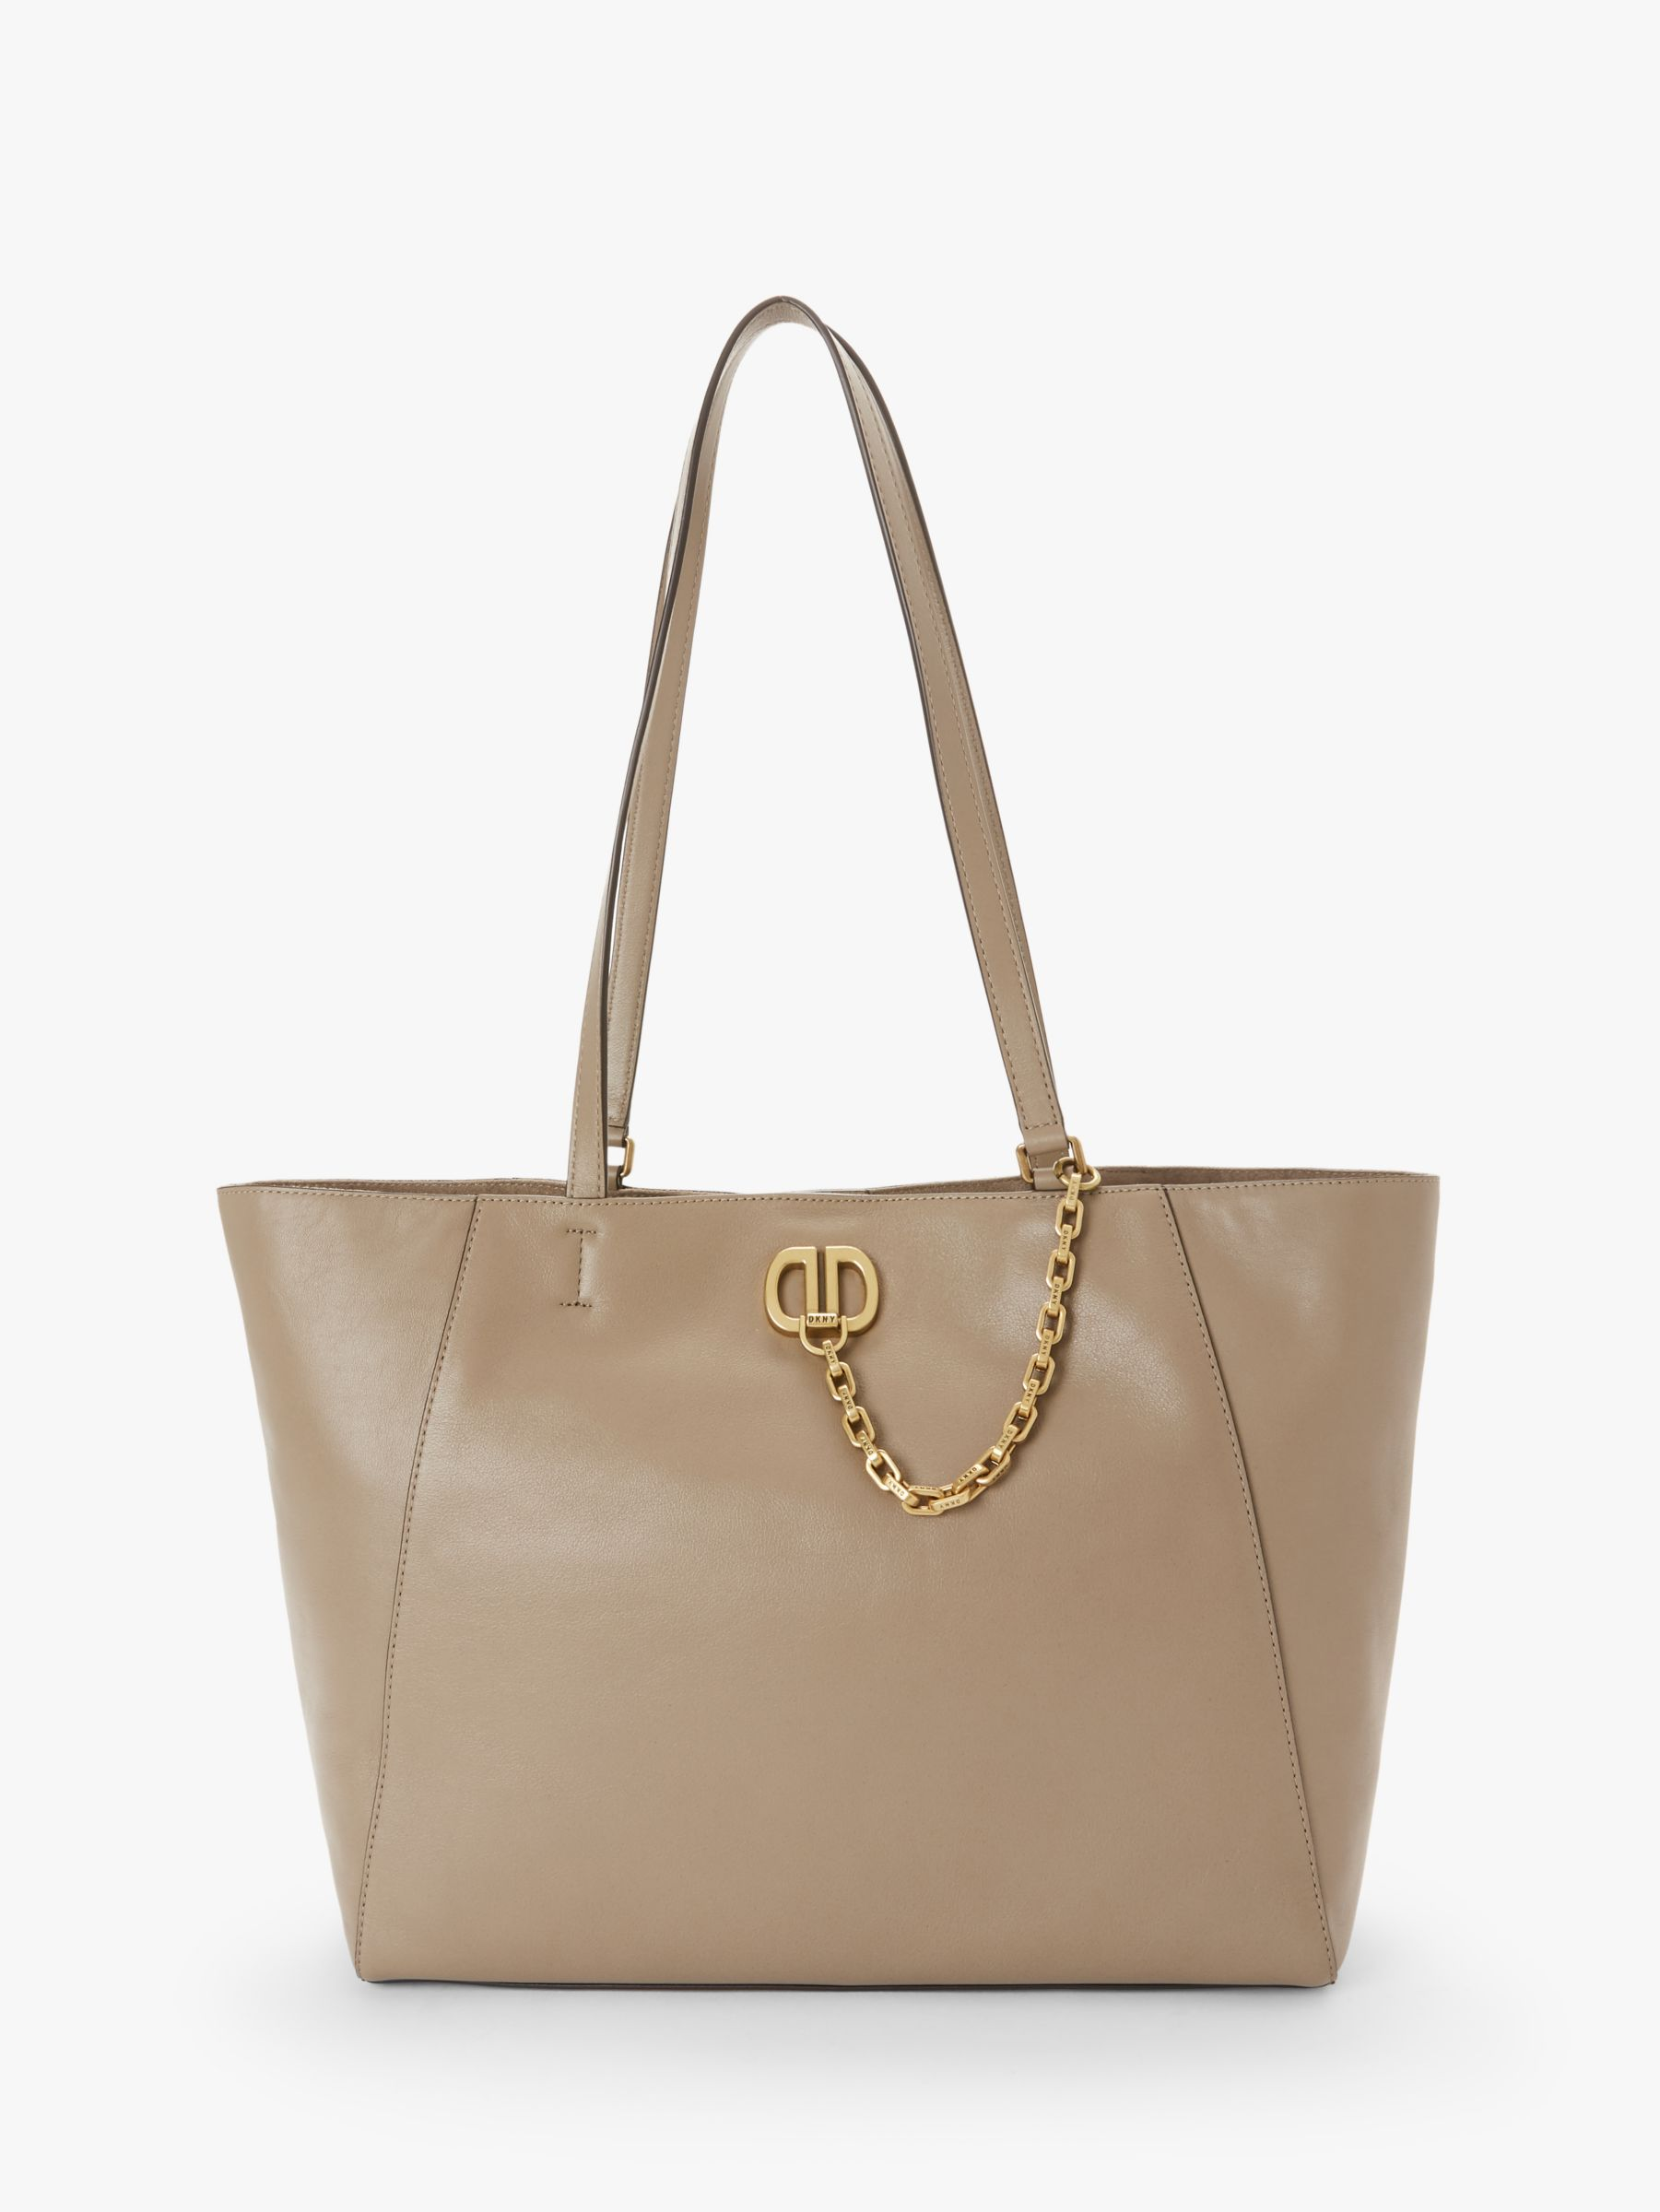 DKNY DKNY Linton Large Leather Tote Bag, Dune